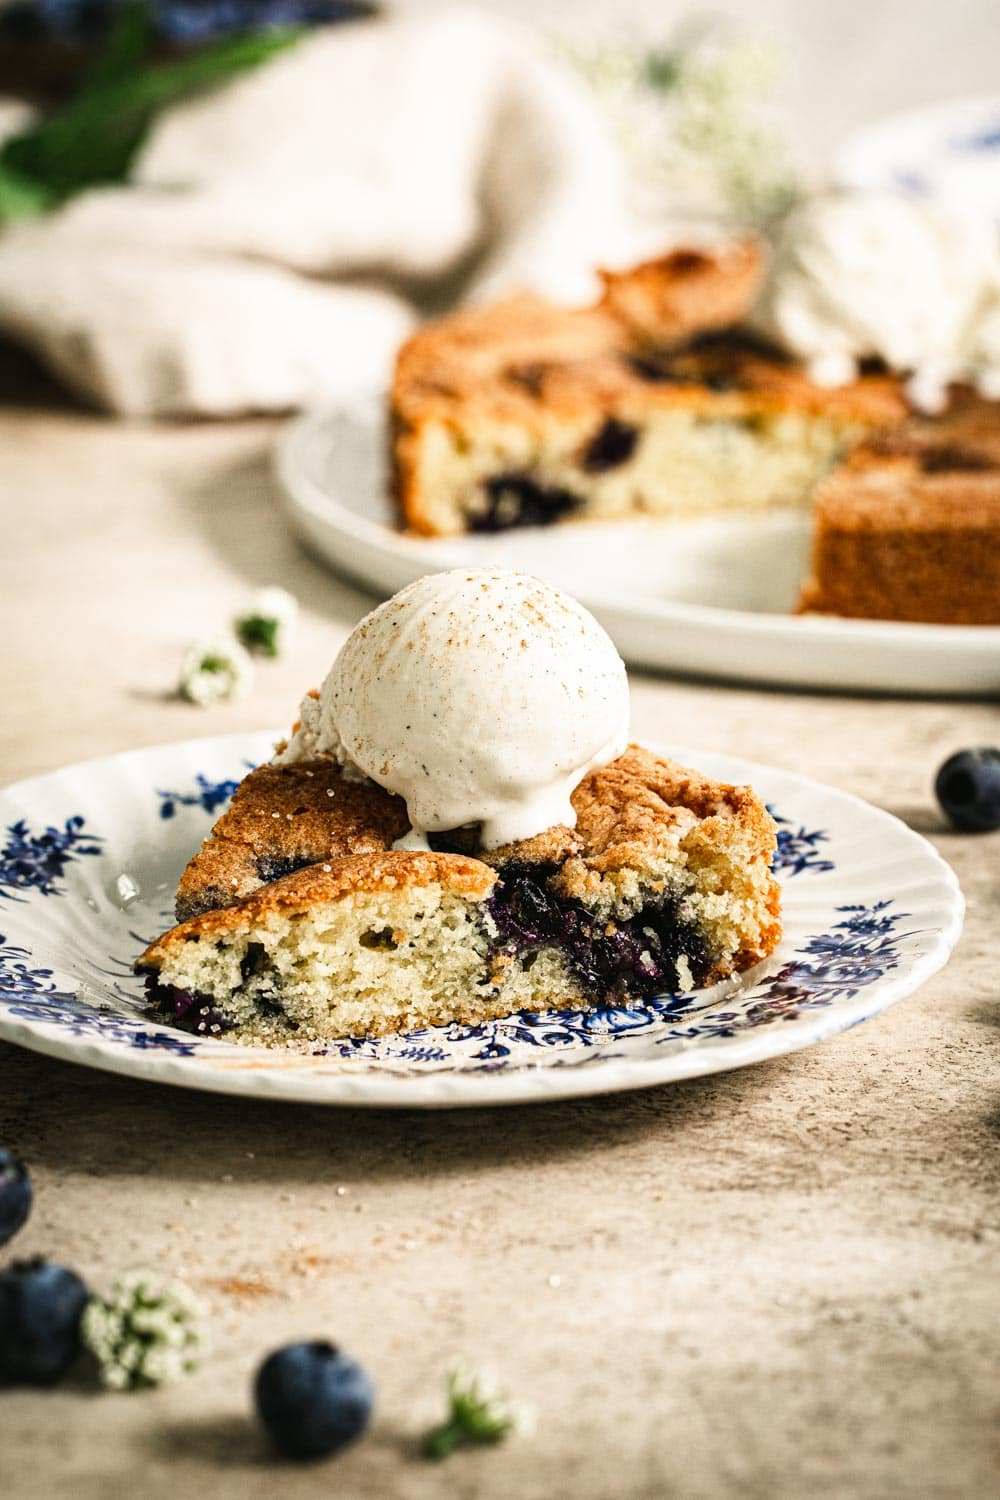 best blueberry torte slice with ice cream on top and on a blue and white plate